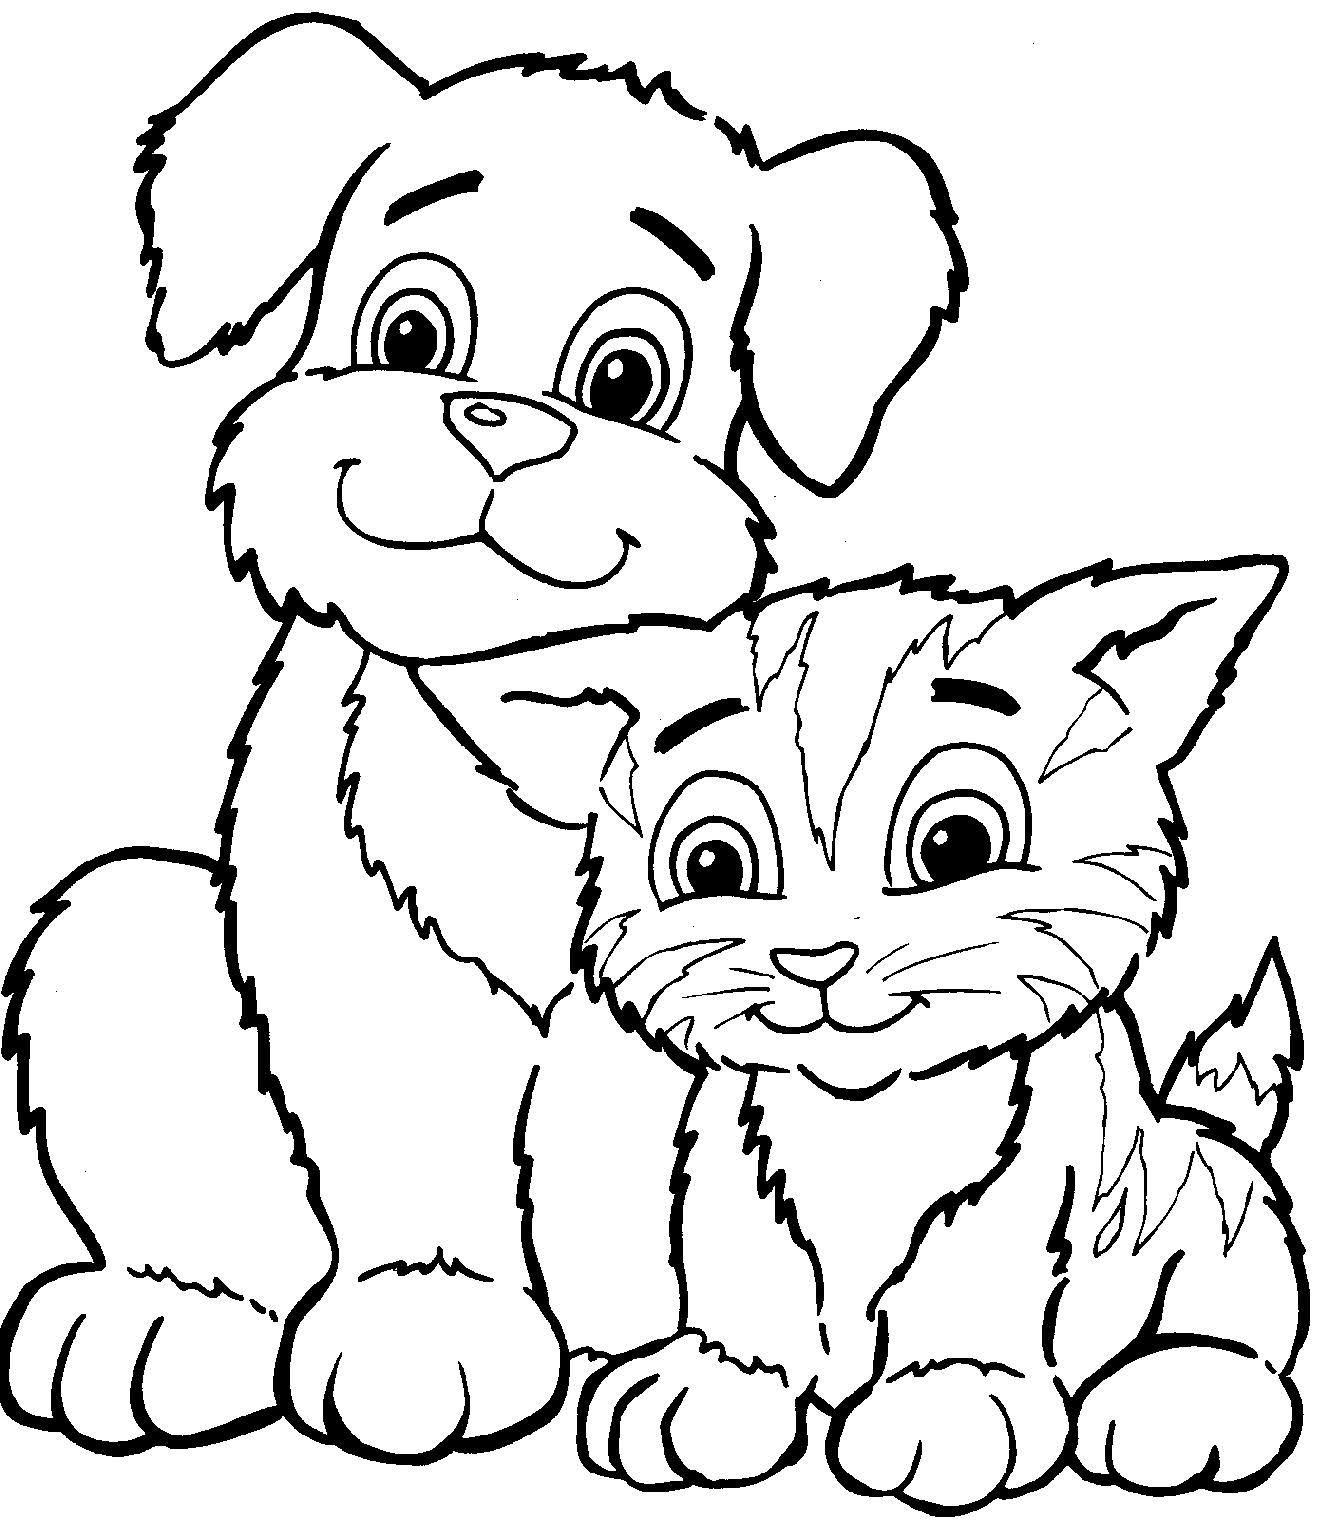 51 Free Colouring Sheets For Children Puppy Coloring Pages Dog Coloring Page Animal Coloring Pages [ 1530 x 1328 Pixel ]